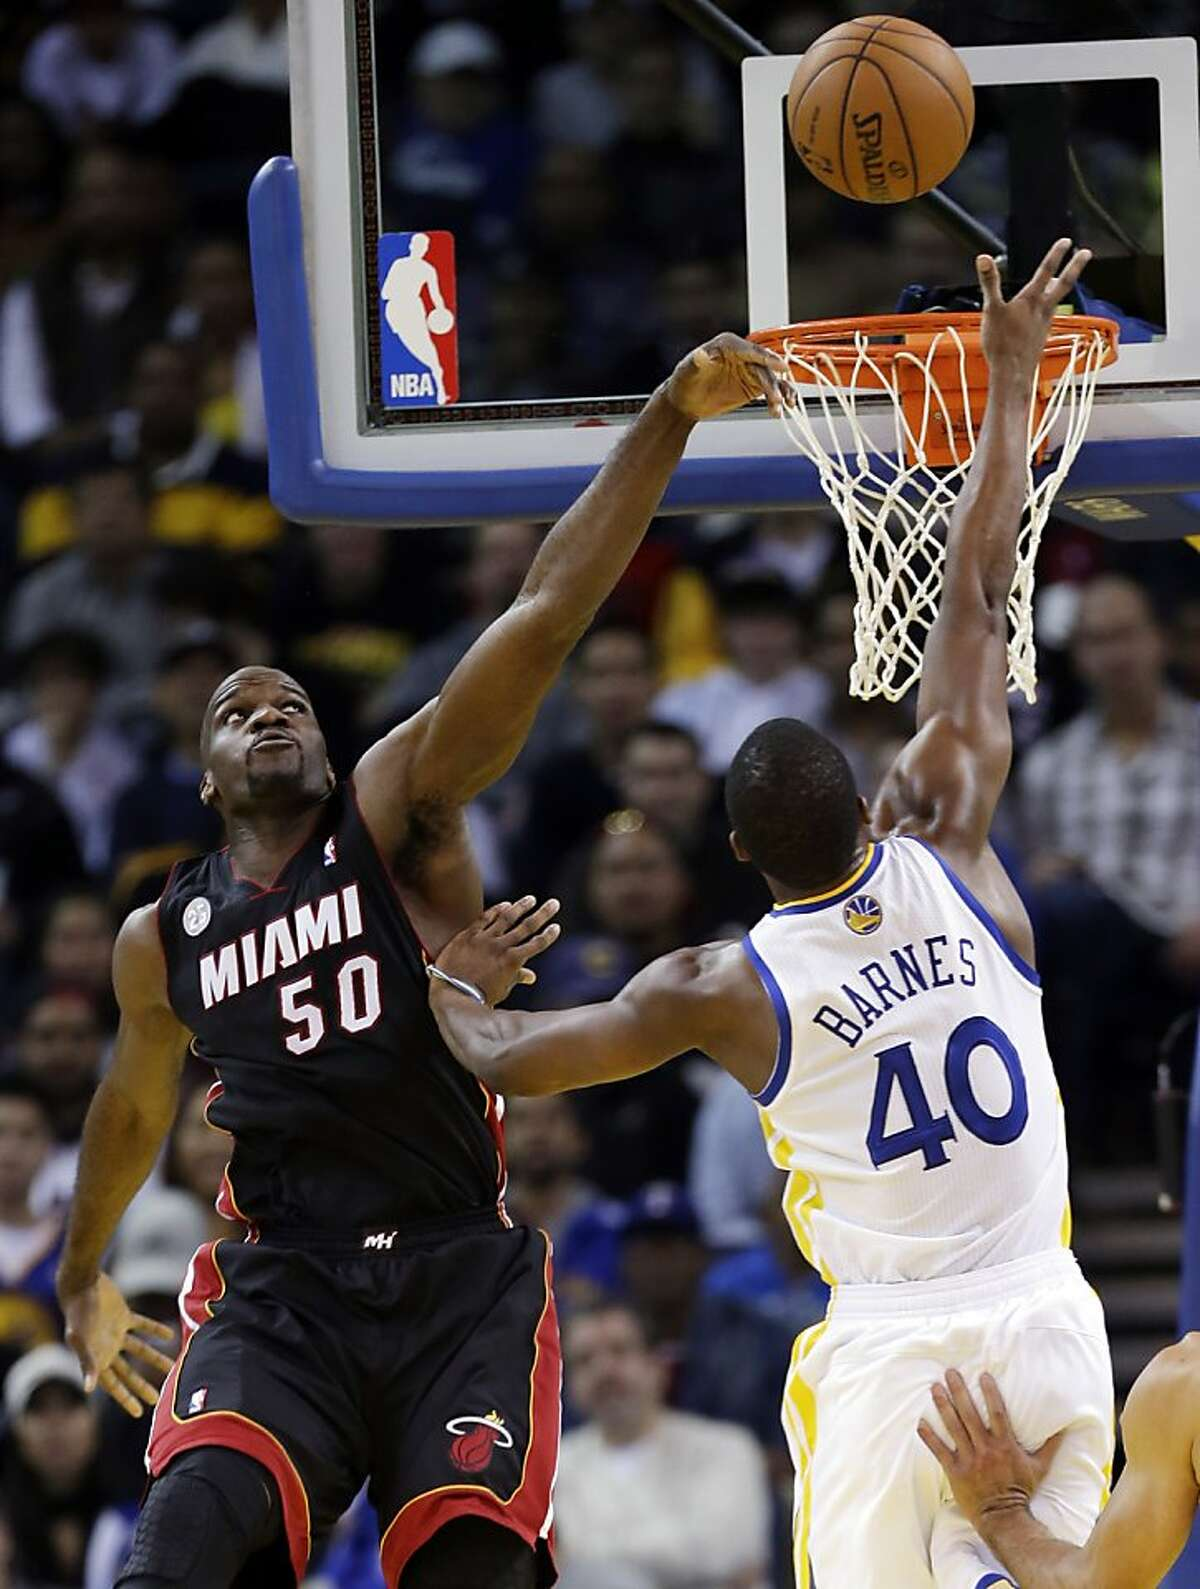 Miami Heat's Joel Anthony (50) blocks a layup attempt from Golden State Warriors' Harrison Barnes (40) during the first half of an NBA basketball game in Oakland, Calif., Wednesday, Jan. 16, 2013. (AP Photo/Marcio Jose Sanchez)